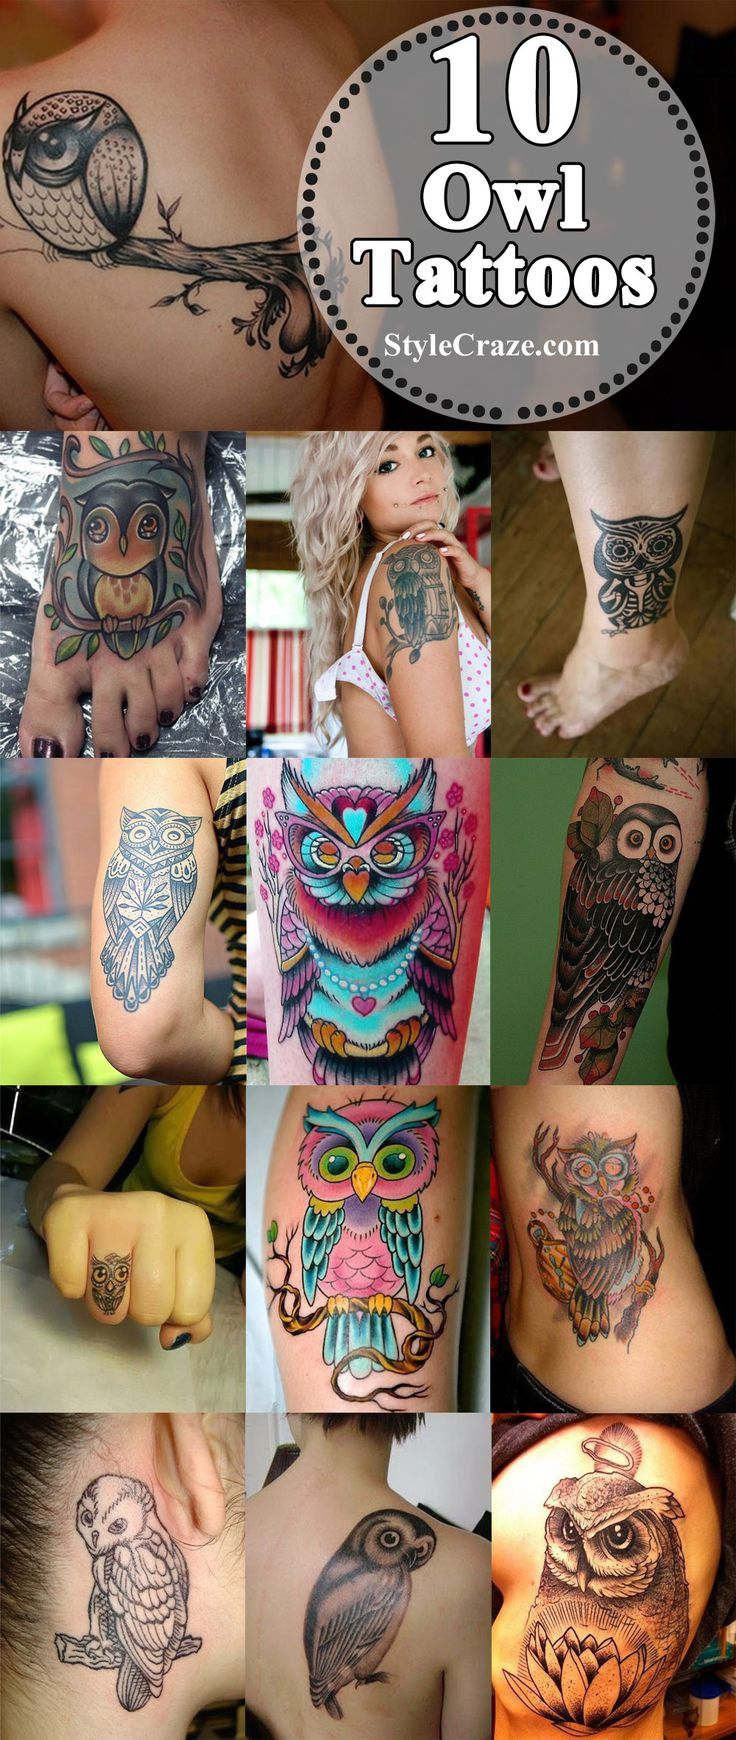 Best Owl Tattoo Designs :  Let us have a glimpse at the top 10 owl tattoos for an idea. Hope you will surely try to have one of them inked over your skin.